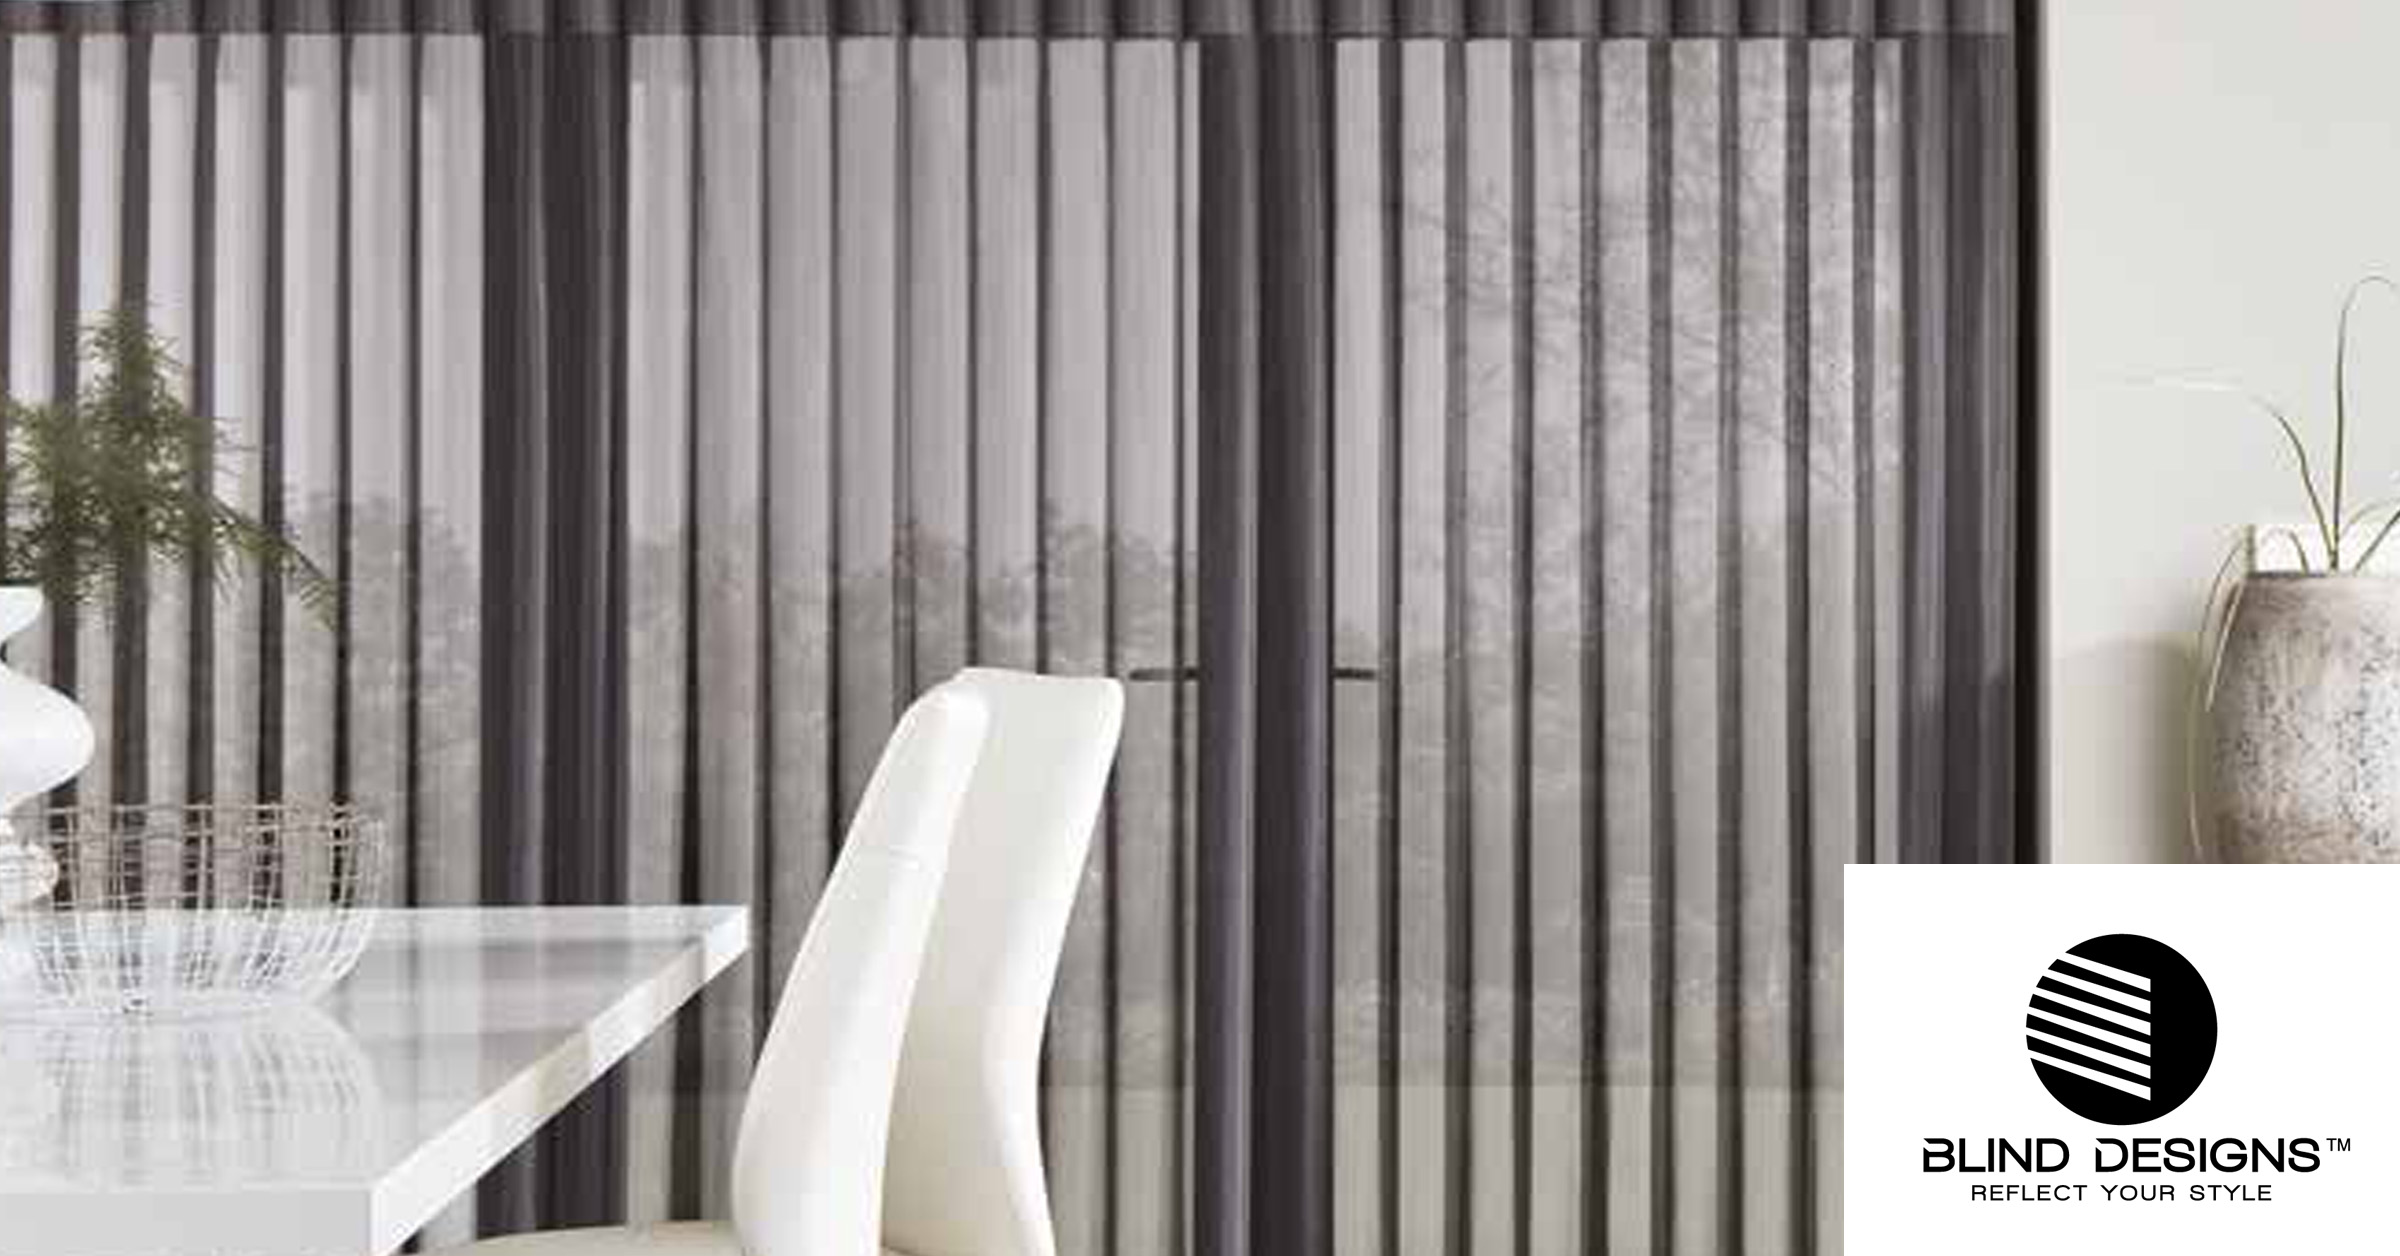 ALLUSION BLINDS – A UNIQUE WINDOW DRESSING  FOR THE MODERN HOME